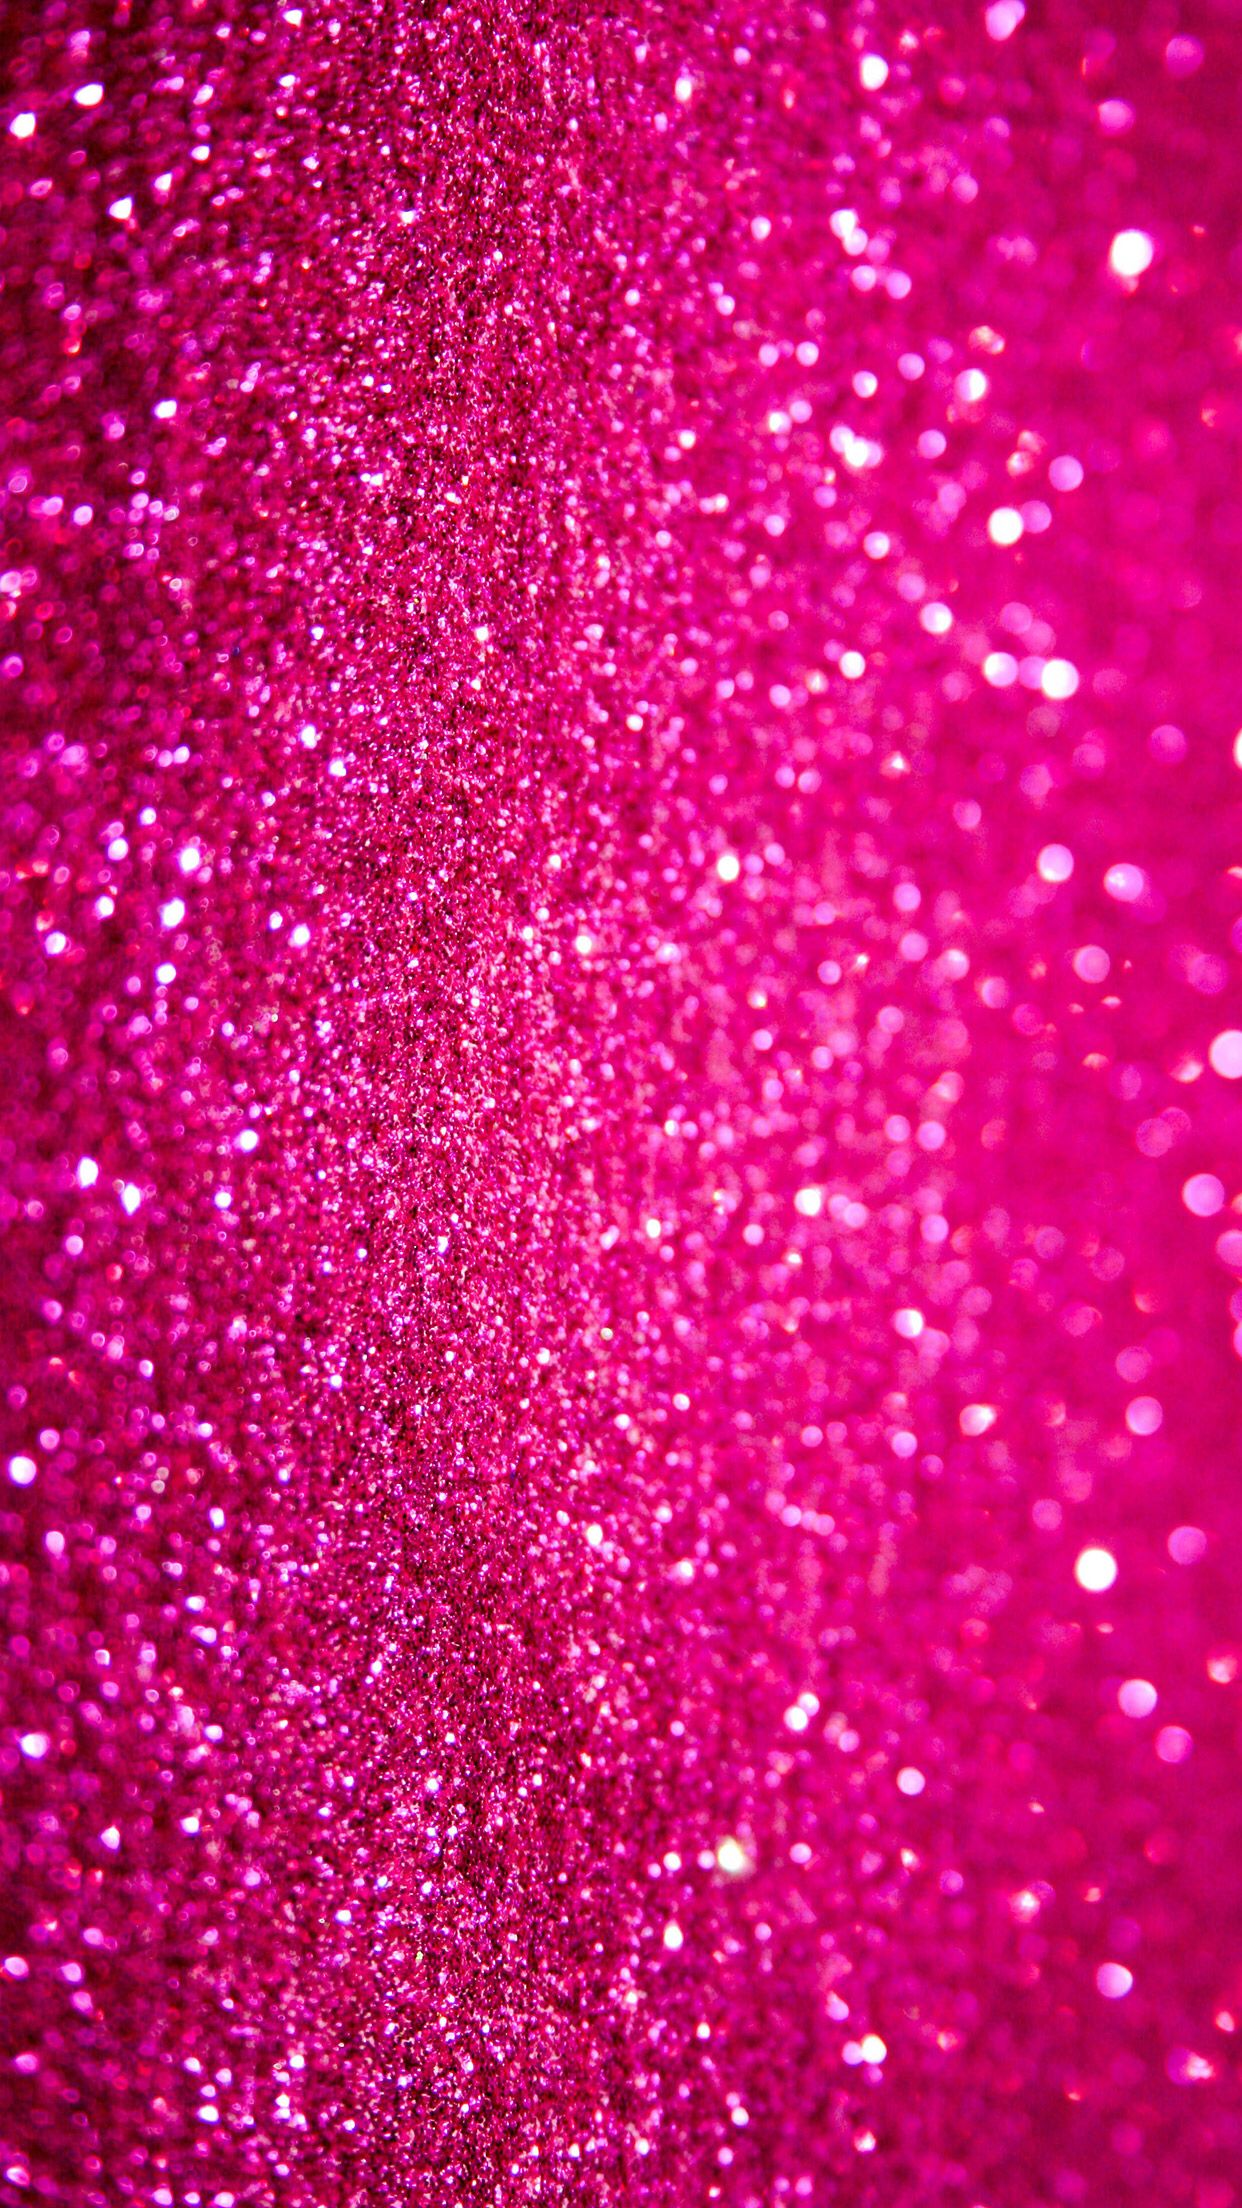 I Just Customized My Lock Screen Using This App This App Has Amazing Collection Of Pink Wallpapers Pink Glitter Wallpaper Pink Wallpaper Glitter Wallpaper